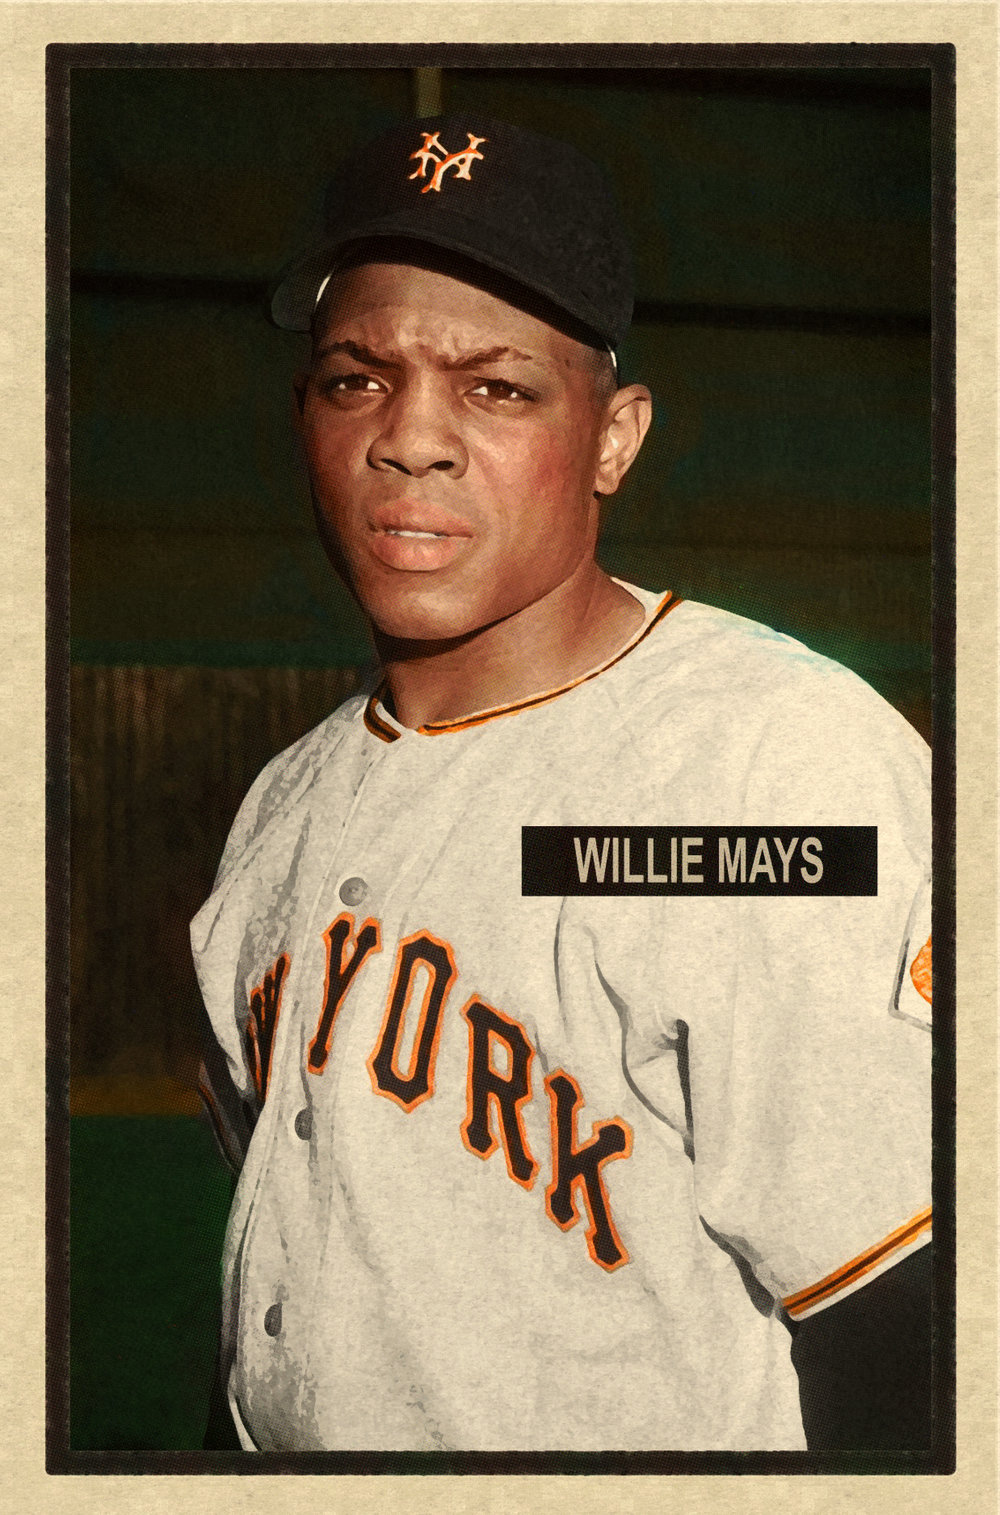 1951 BASEBALL STARS SERIES #20 WILLIE MAYS 2/13/17 Auction Closes at $135.50 USD - Current Poulation of 1